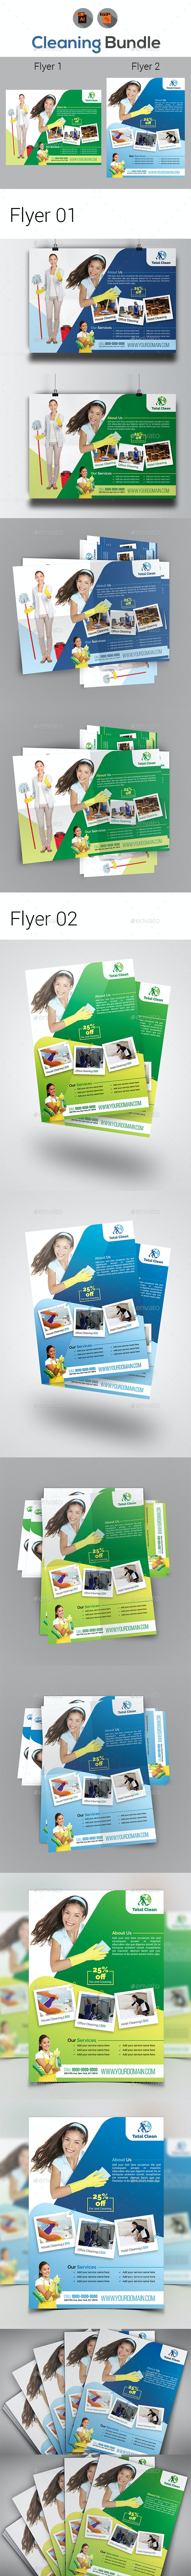 Cleaning Flyer   House   Office   Hotel - Corporate Flyers